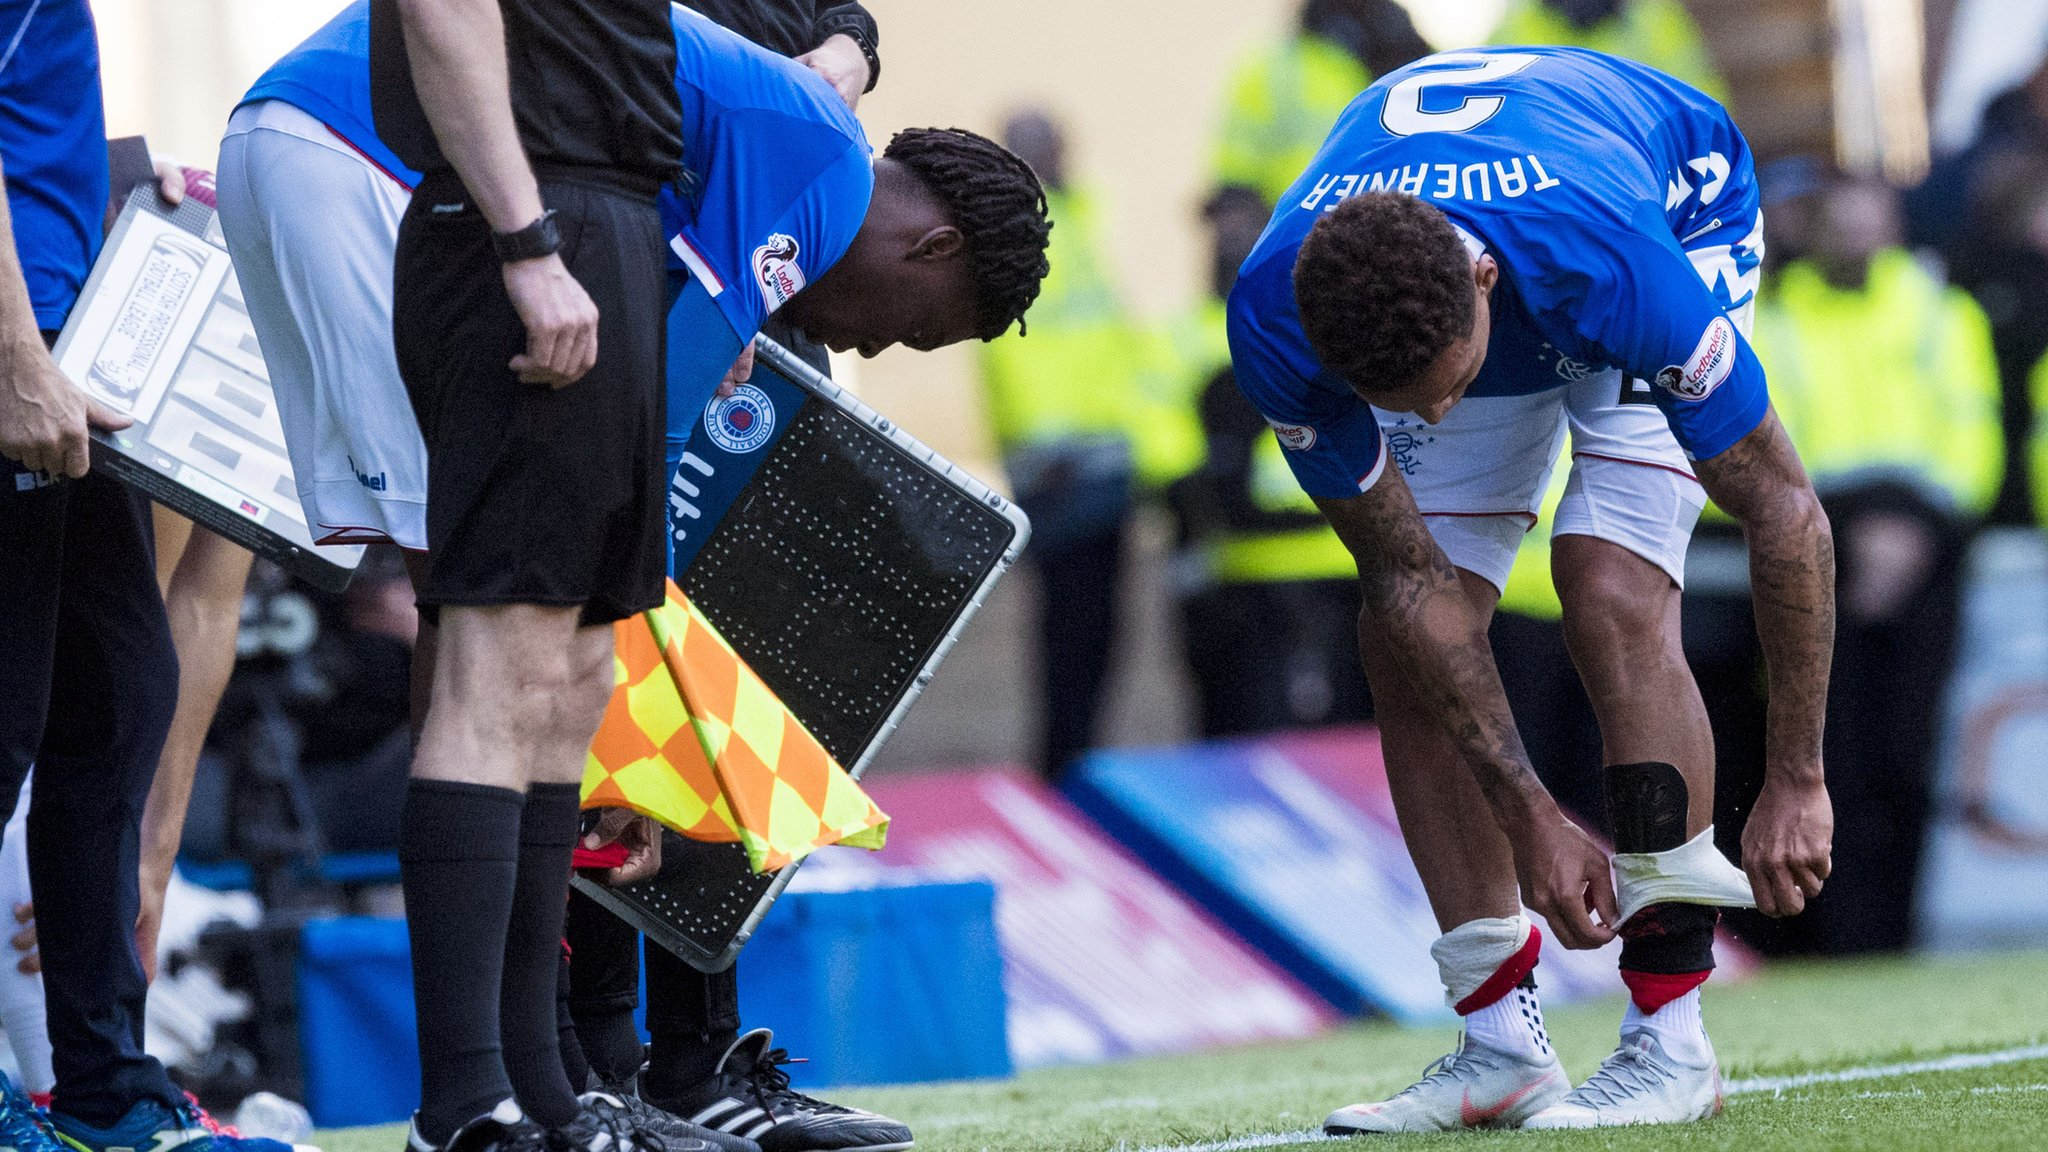 Rangers substitute Ovie Ejaria has to call upon captain James Tavernier's shin pads.